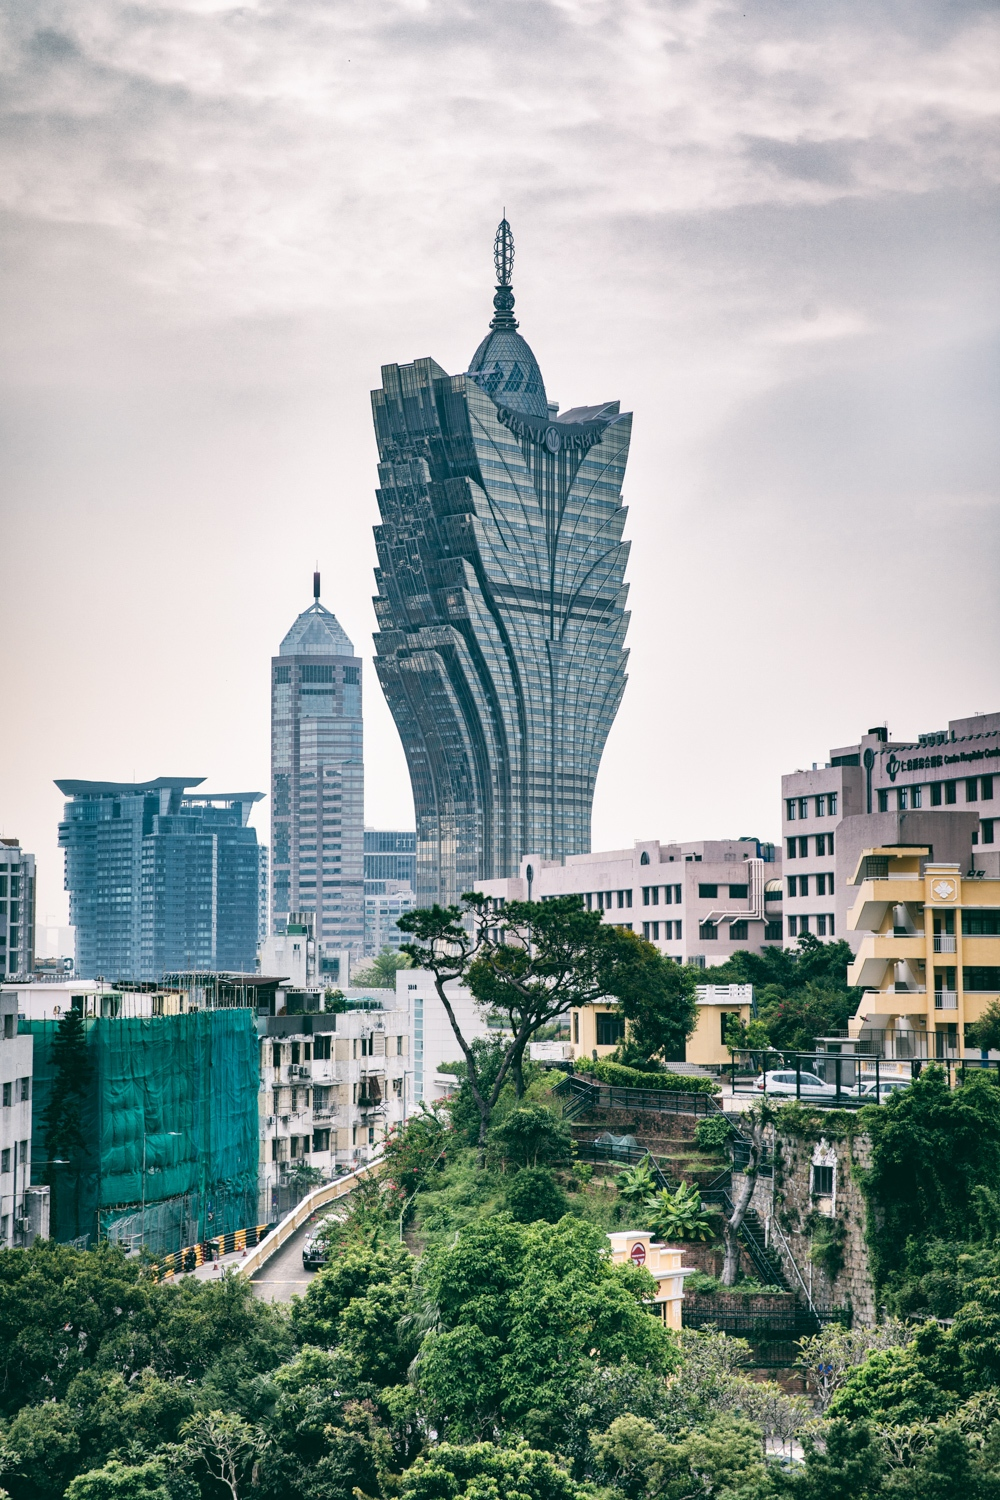 Grand Lisboa Casino, Macao